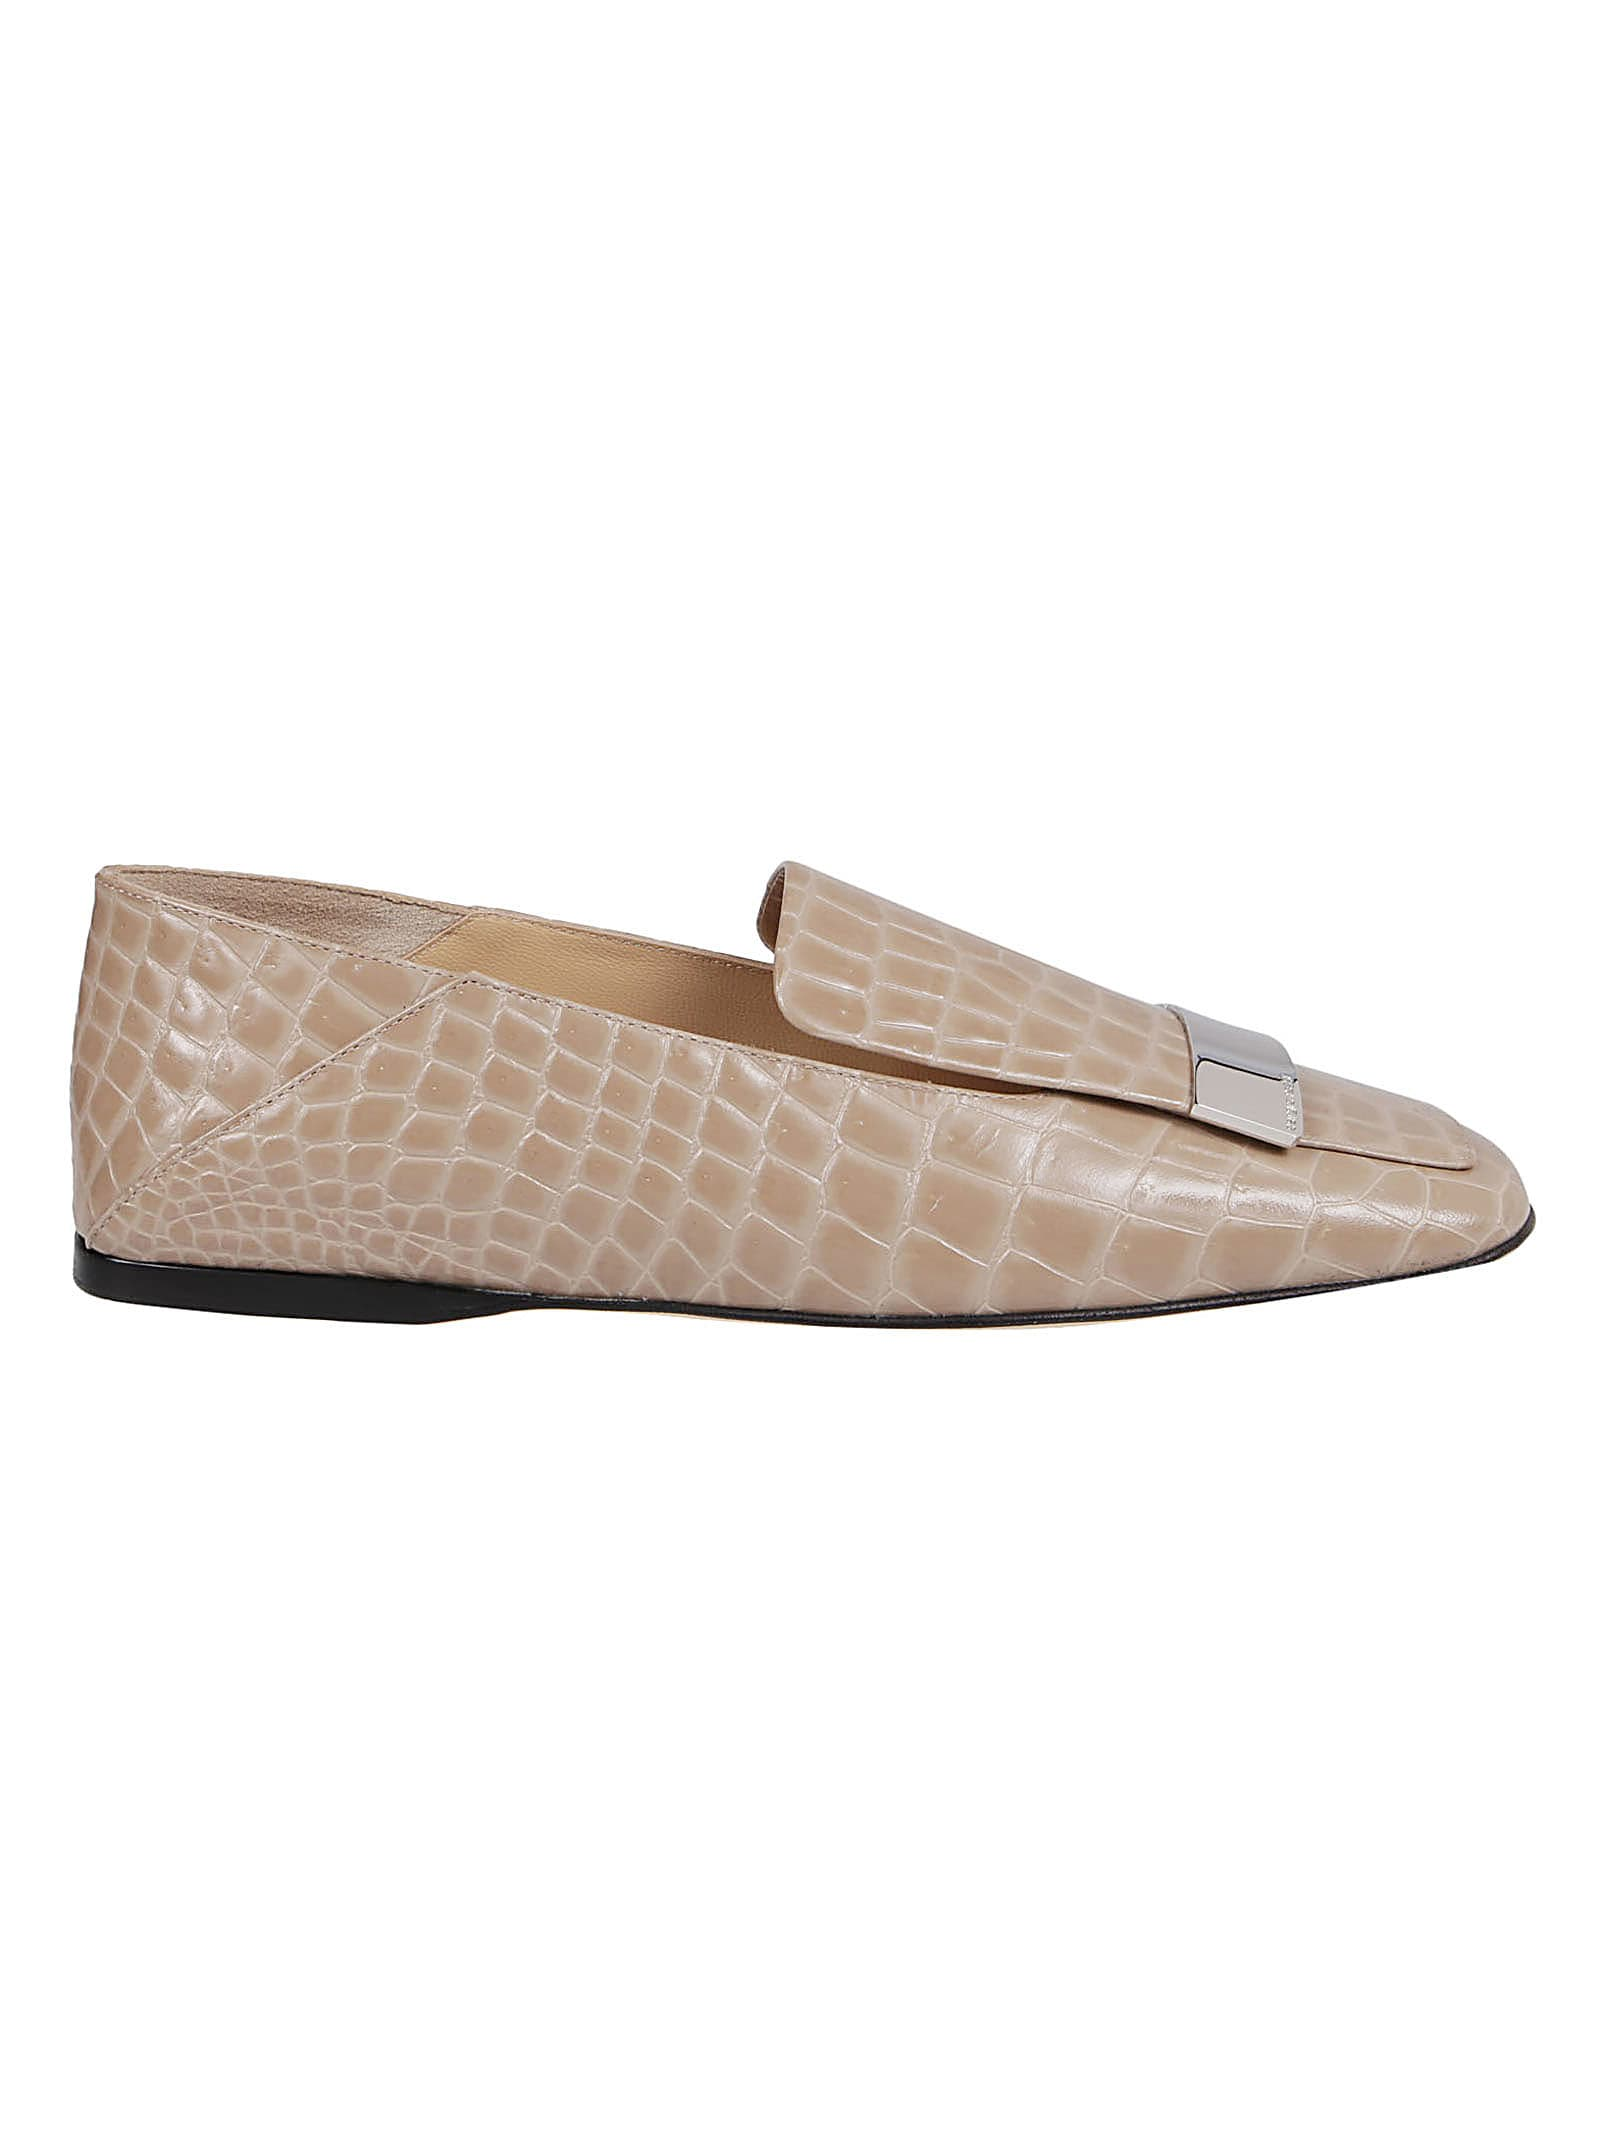 Sergio Rossi FLAT LOAFERS SR1